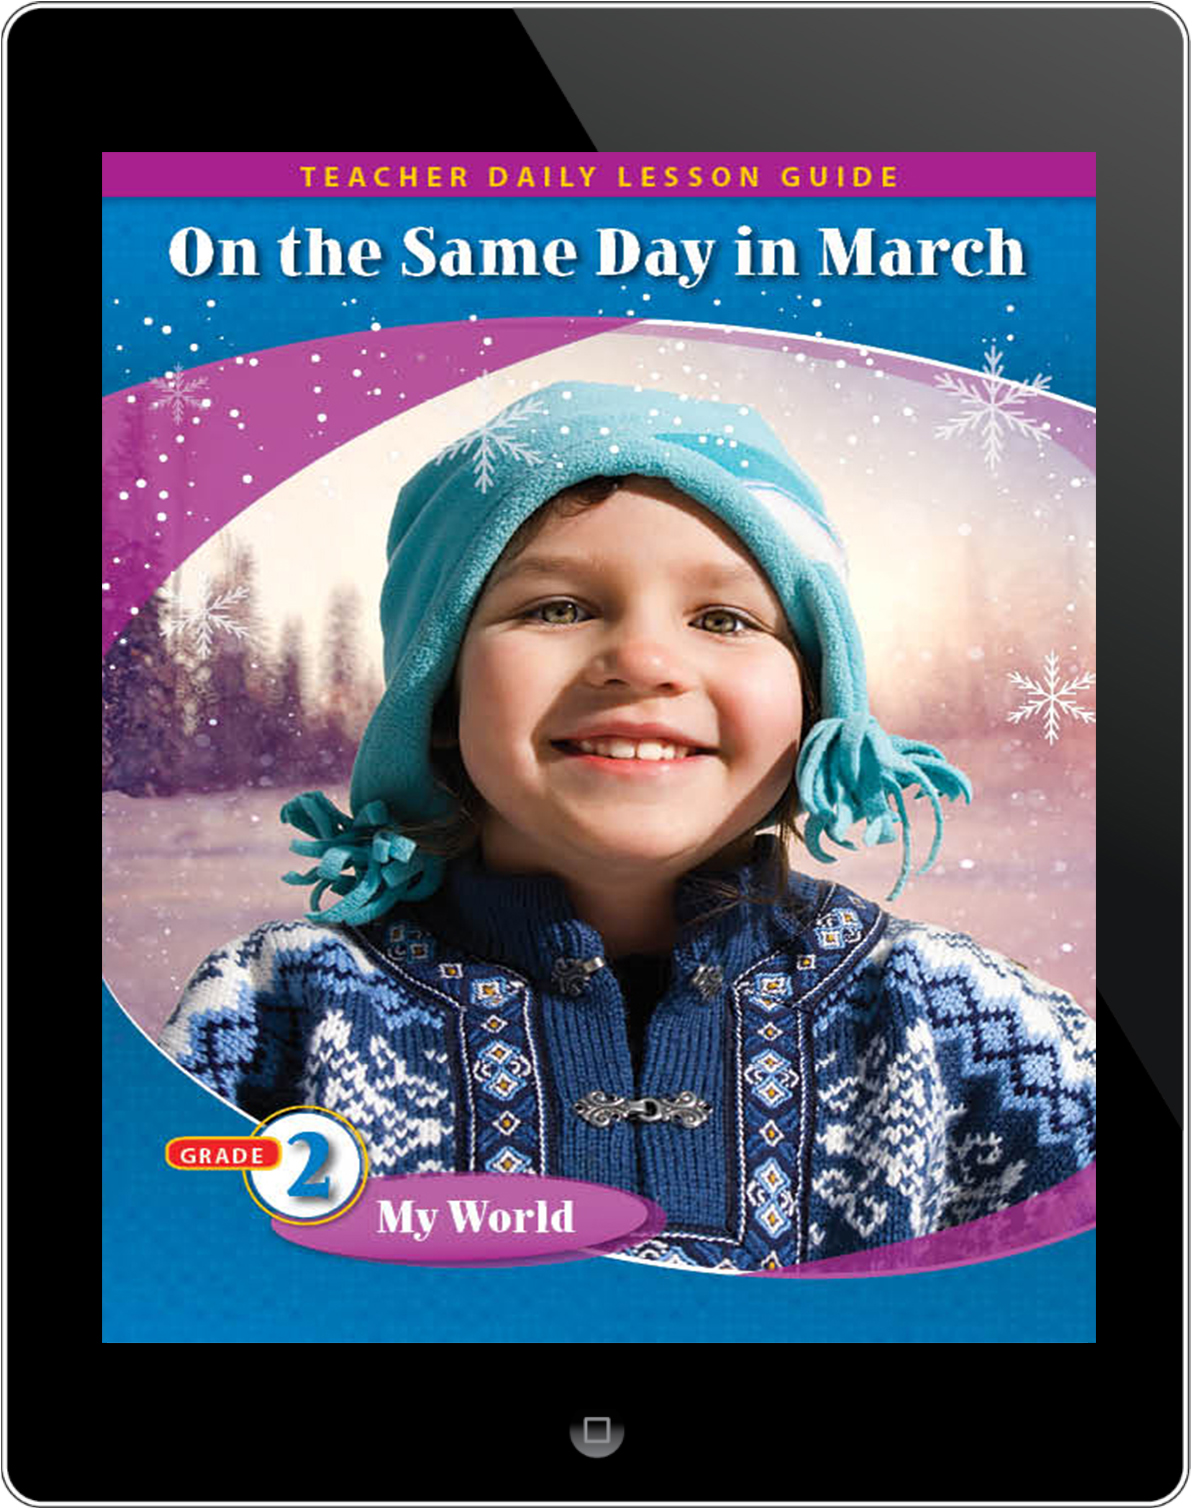 Pathways2.0 Grade 2 My World Unit: On the Same Day in March: A Tour of the World's Weather Daily Lesson Guide 5 Year License